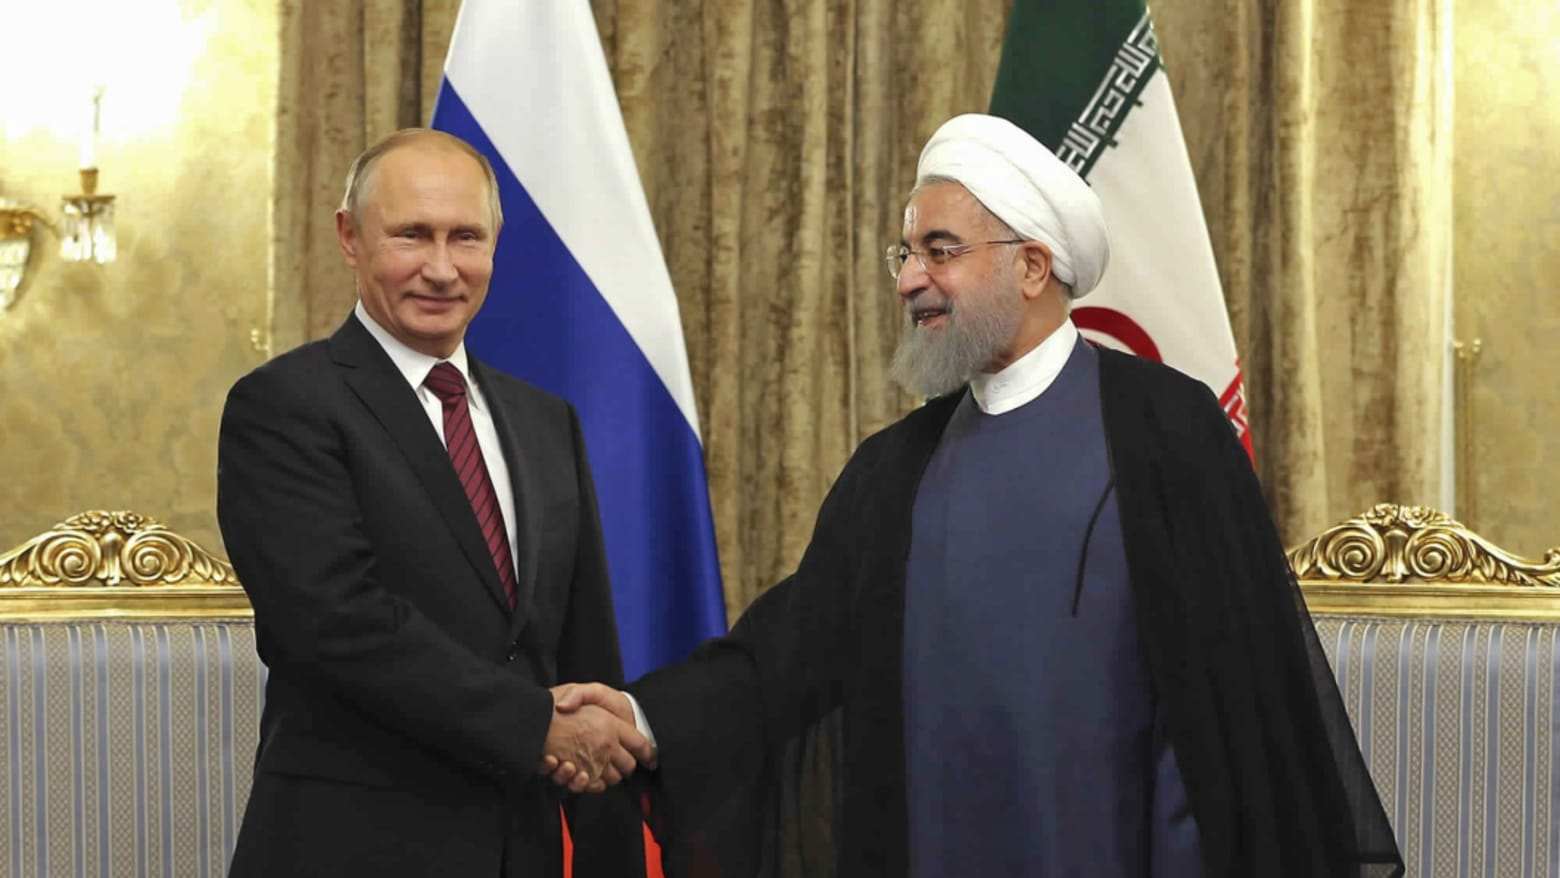 Iran's President Hassan Rouhani and Vladimir Putin will flex their muscles in the Middle East in 2019.Credit:AP